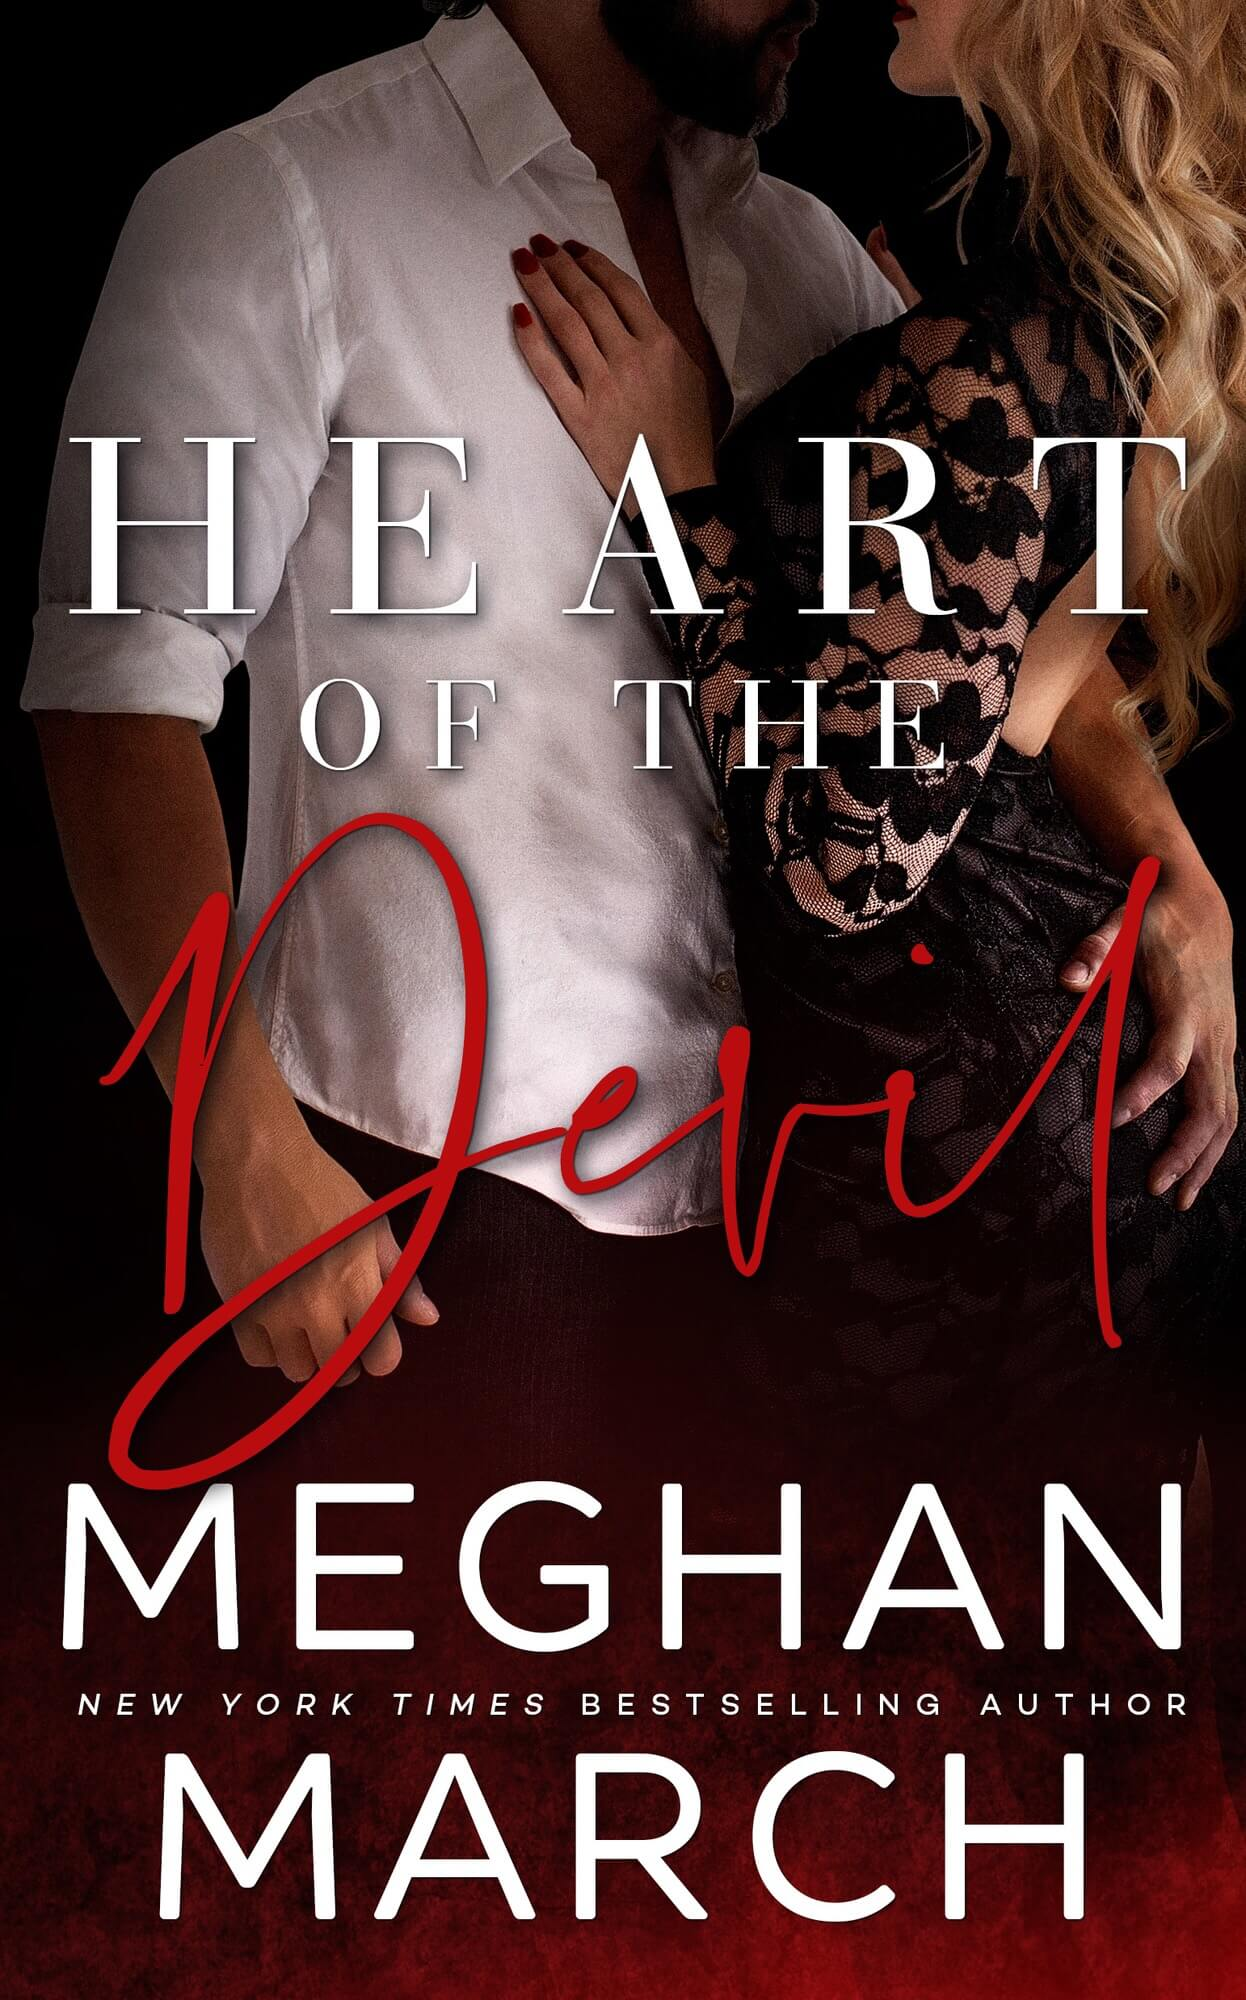 Heart of the Devil (Forge Trilogy Book 3) by Meghan March